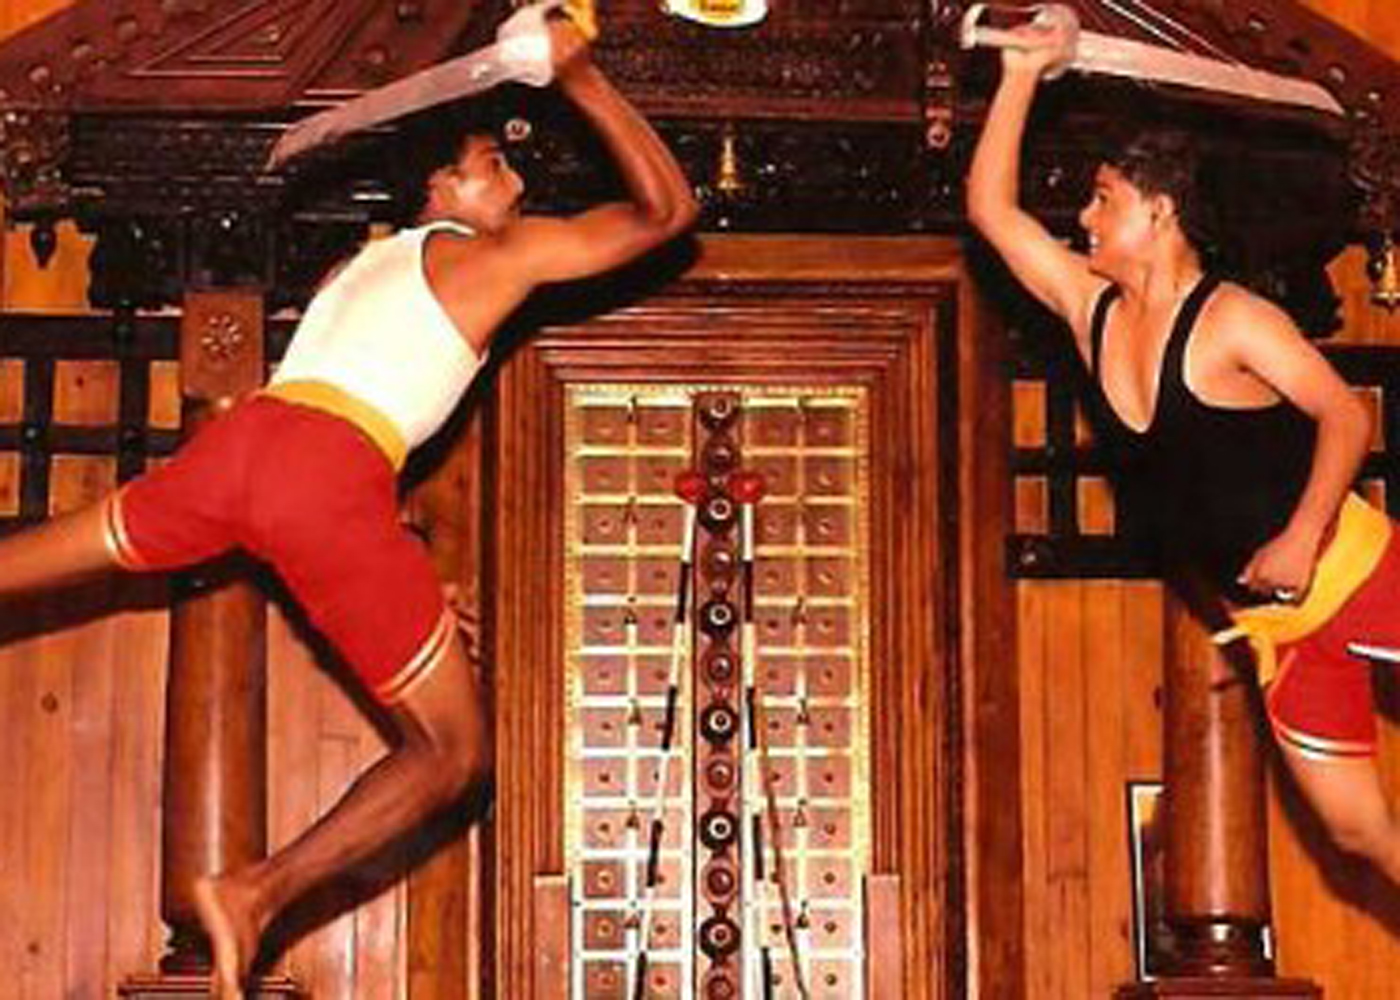 KURANGANI.thekkady.Kadathanadan Kalari Centre is a renowned centre of the traditional form of martial arts, Kalaripayyattu which was invented by Sage Parshuram. The programs arranged by the centre are-RENGHA HOLIDAYS